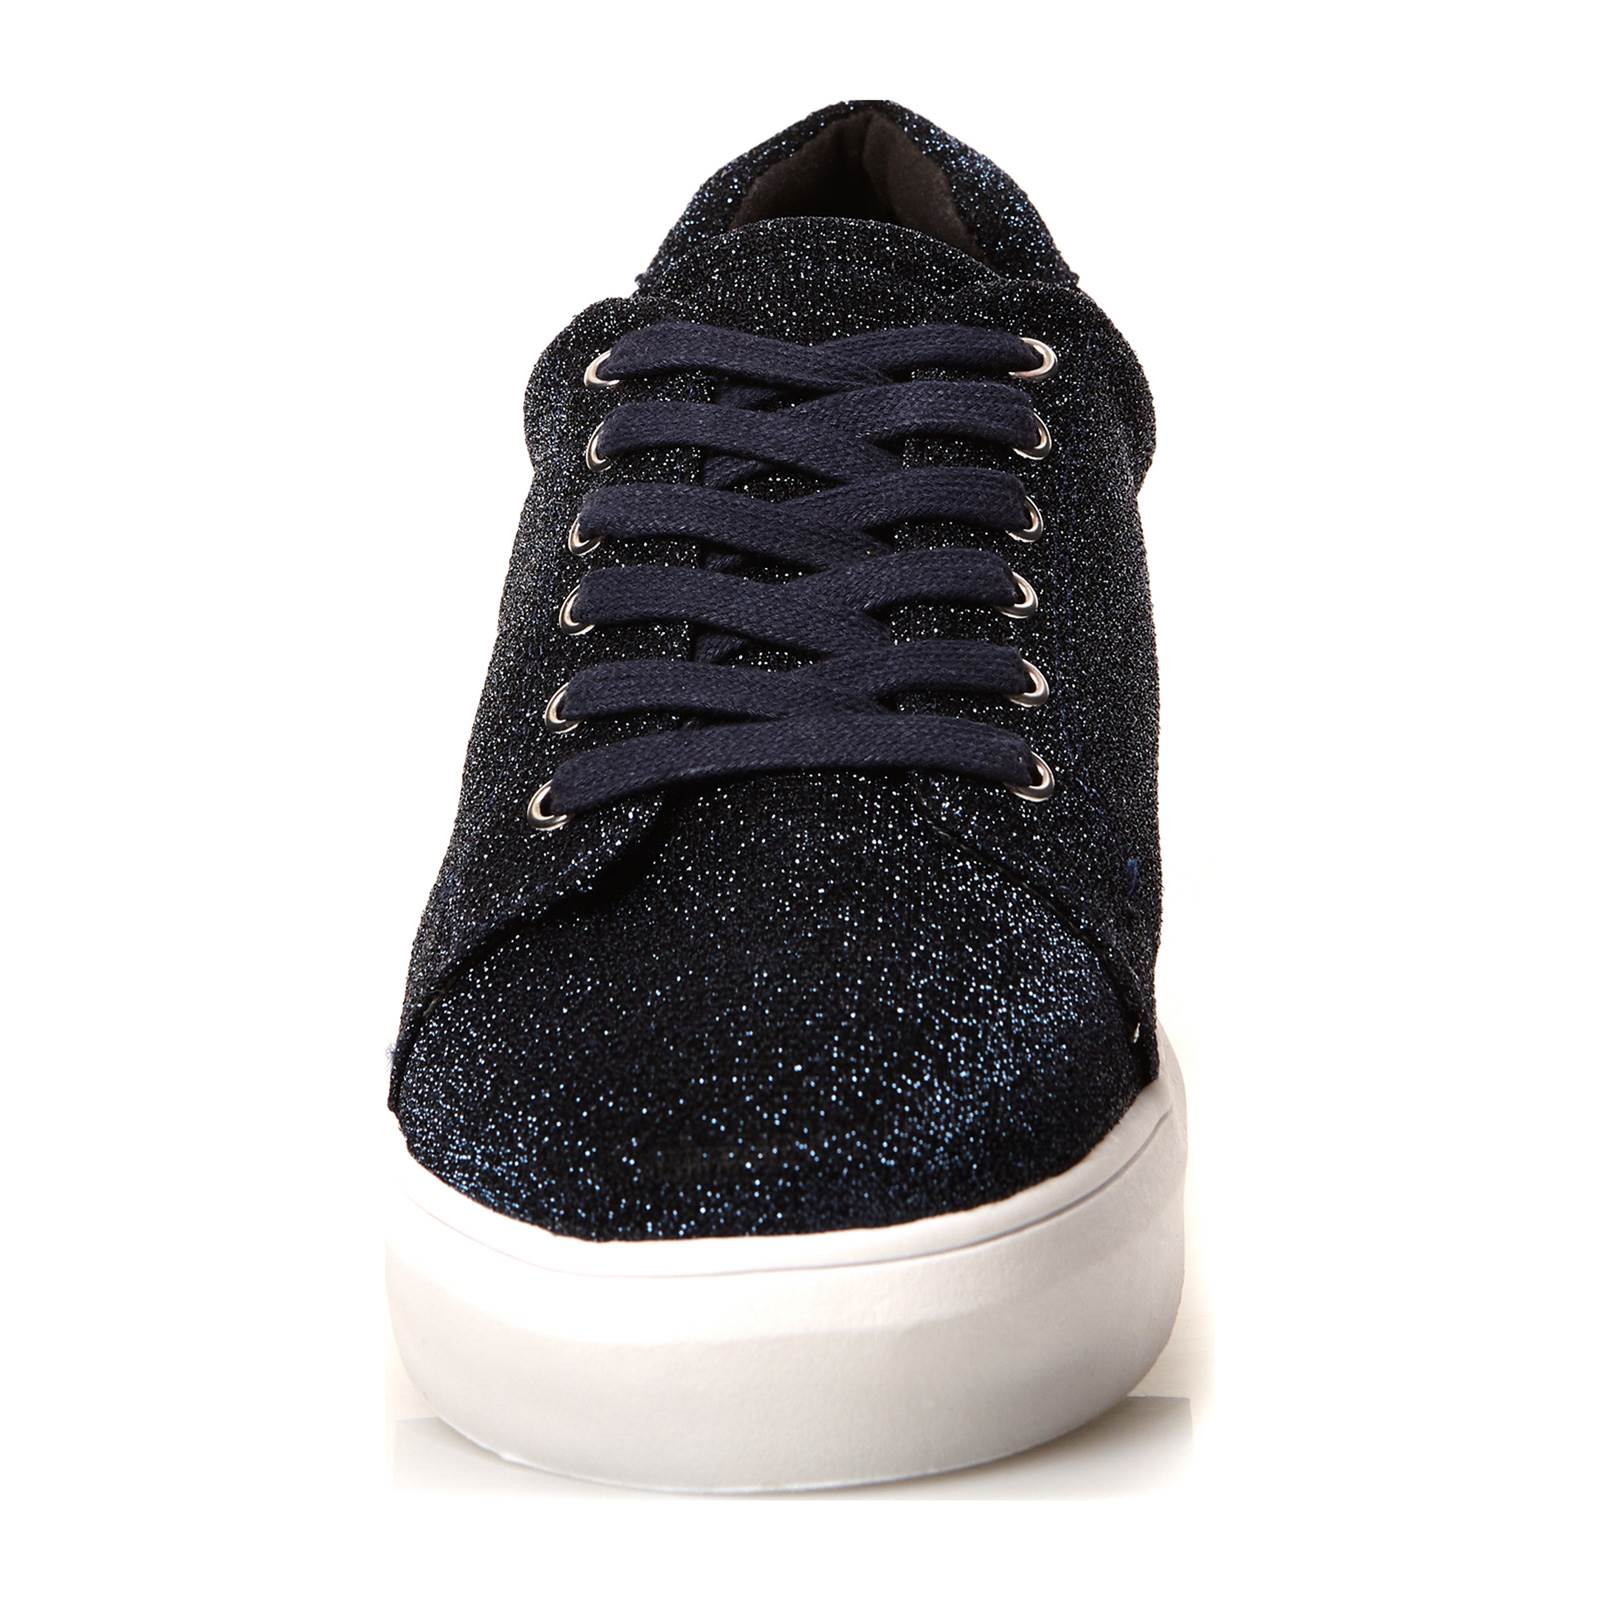 Low Pieces SneakersHimmelblau Pieces Low SneakersHimmelblau SneakersHimmelblau Pieces Pieces Low Low rtsCQxhd